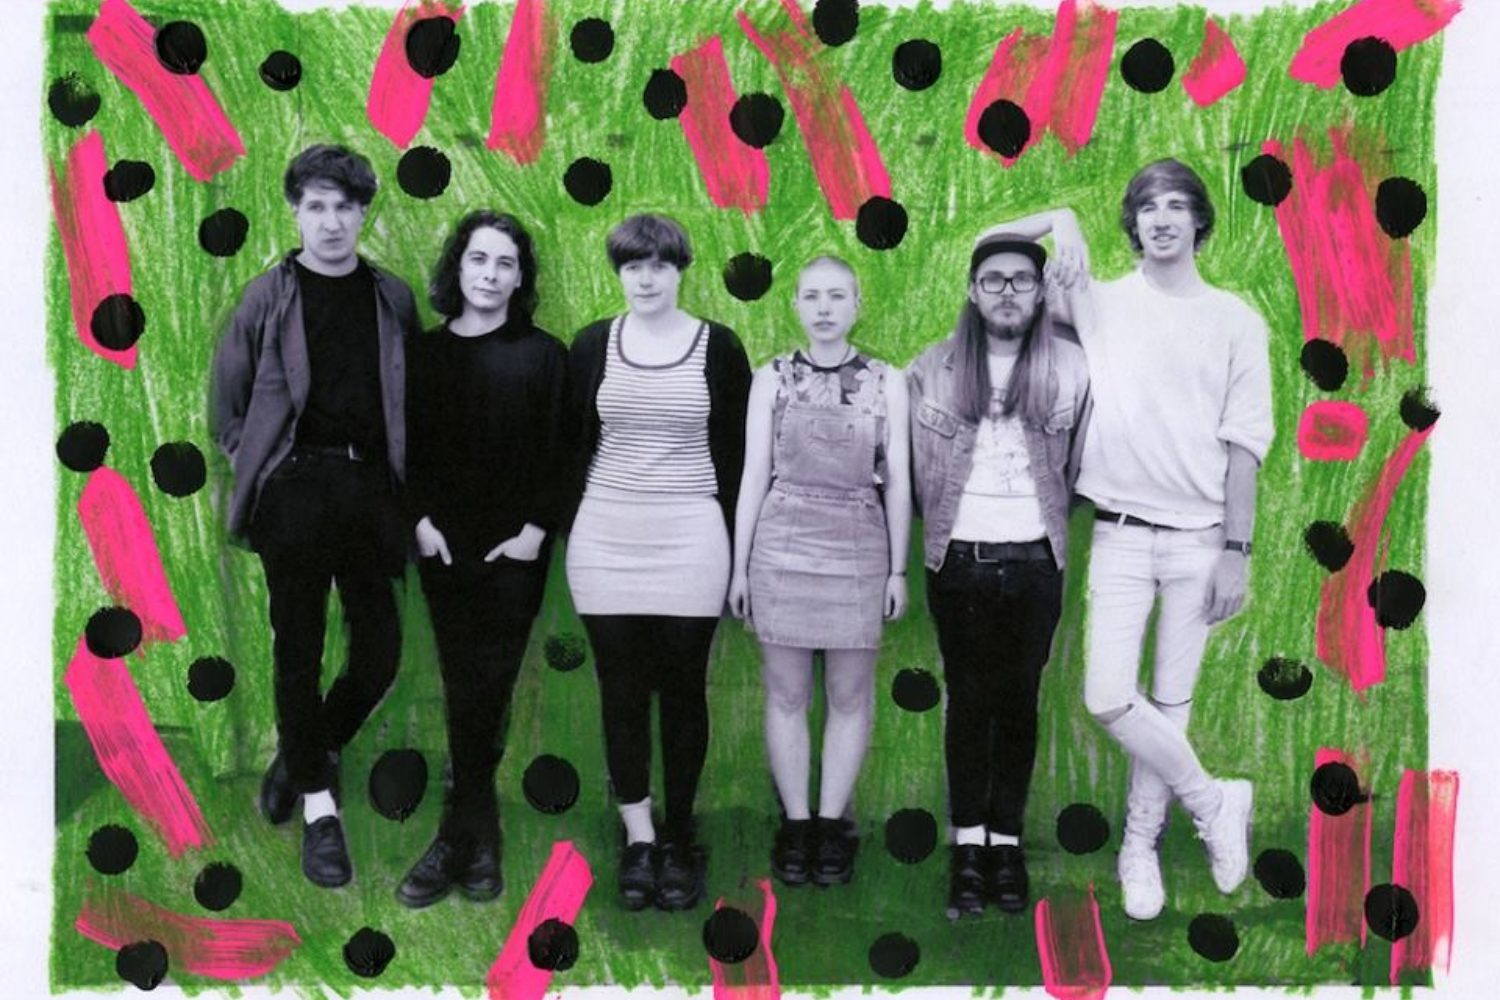 Joanna Gruesome to headline End of the Road's Christmas Shindig